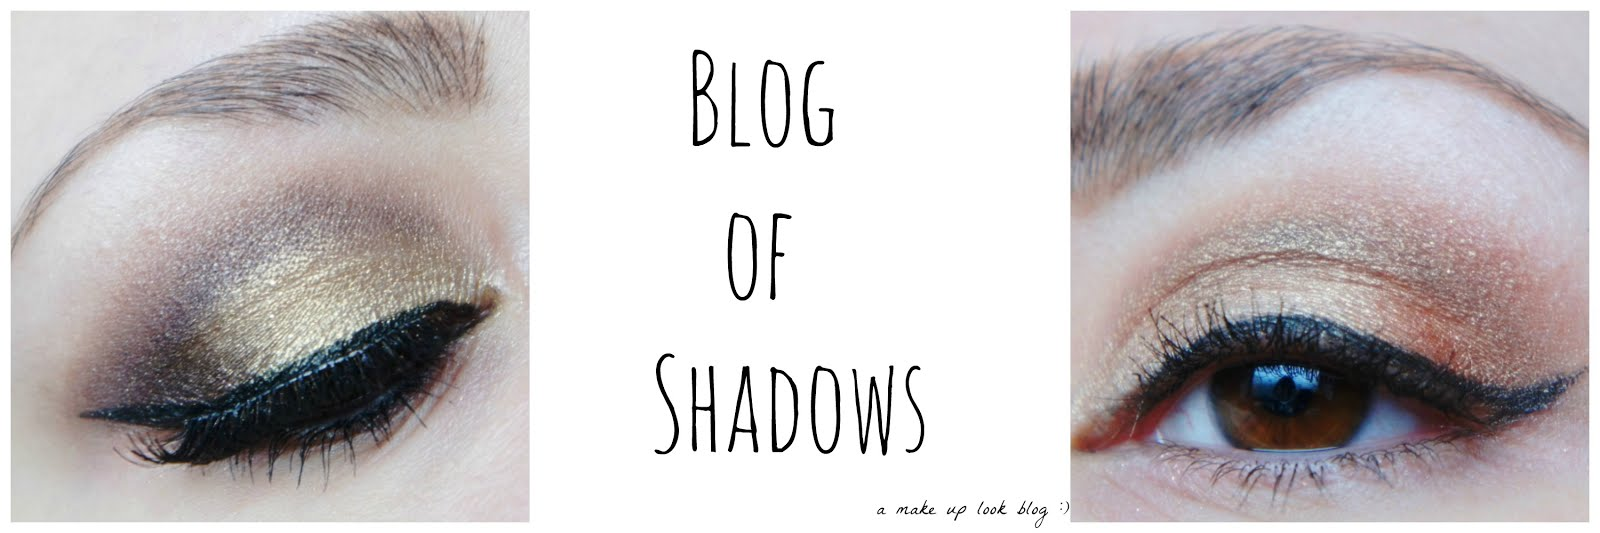 Blog of Shadows